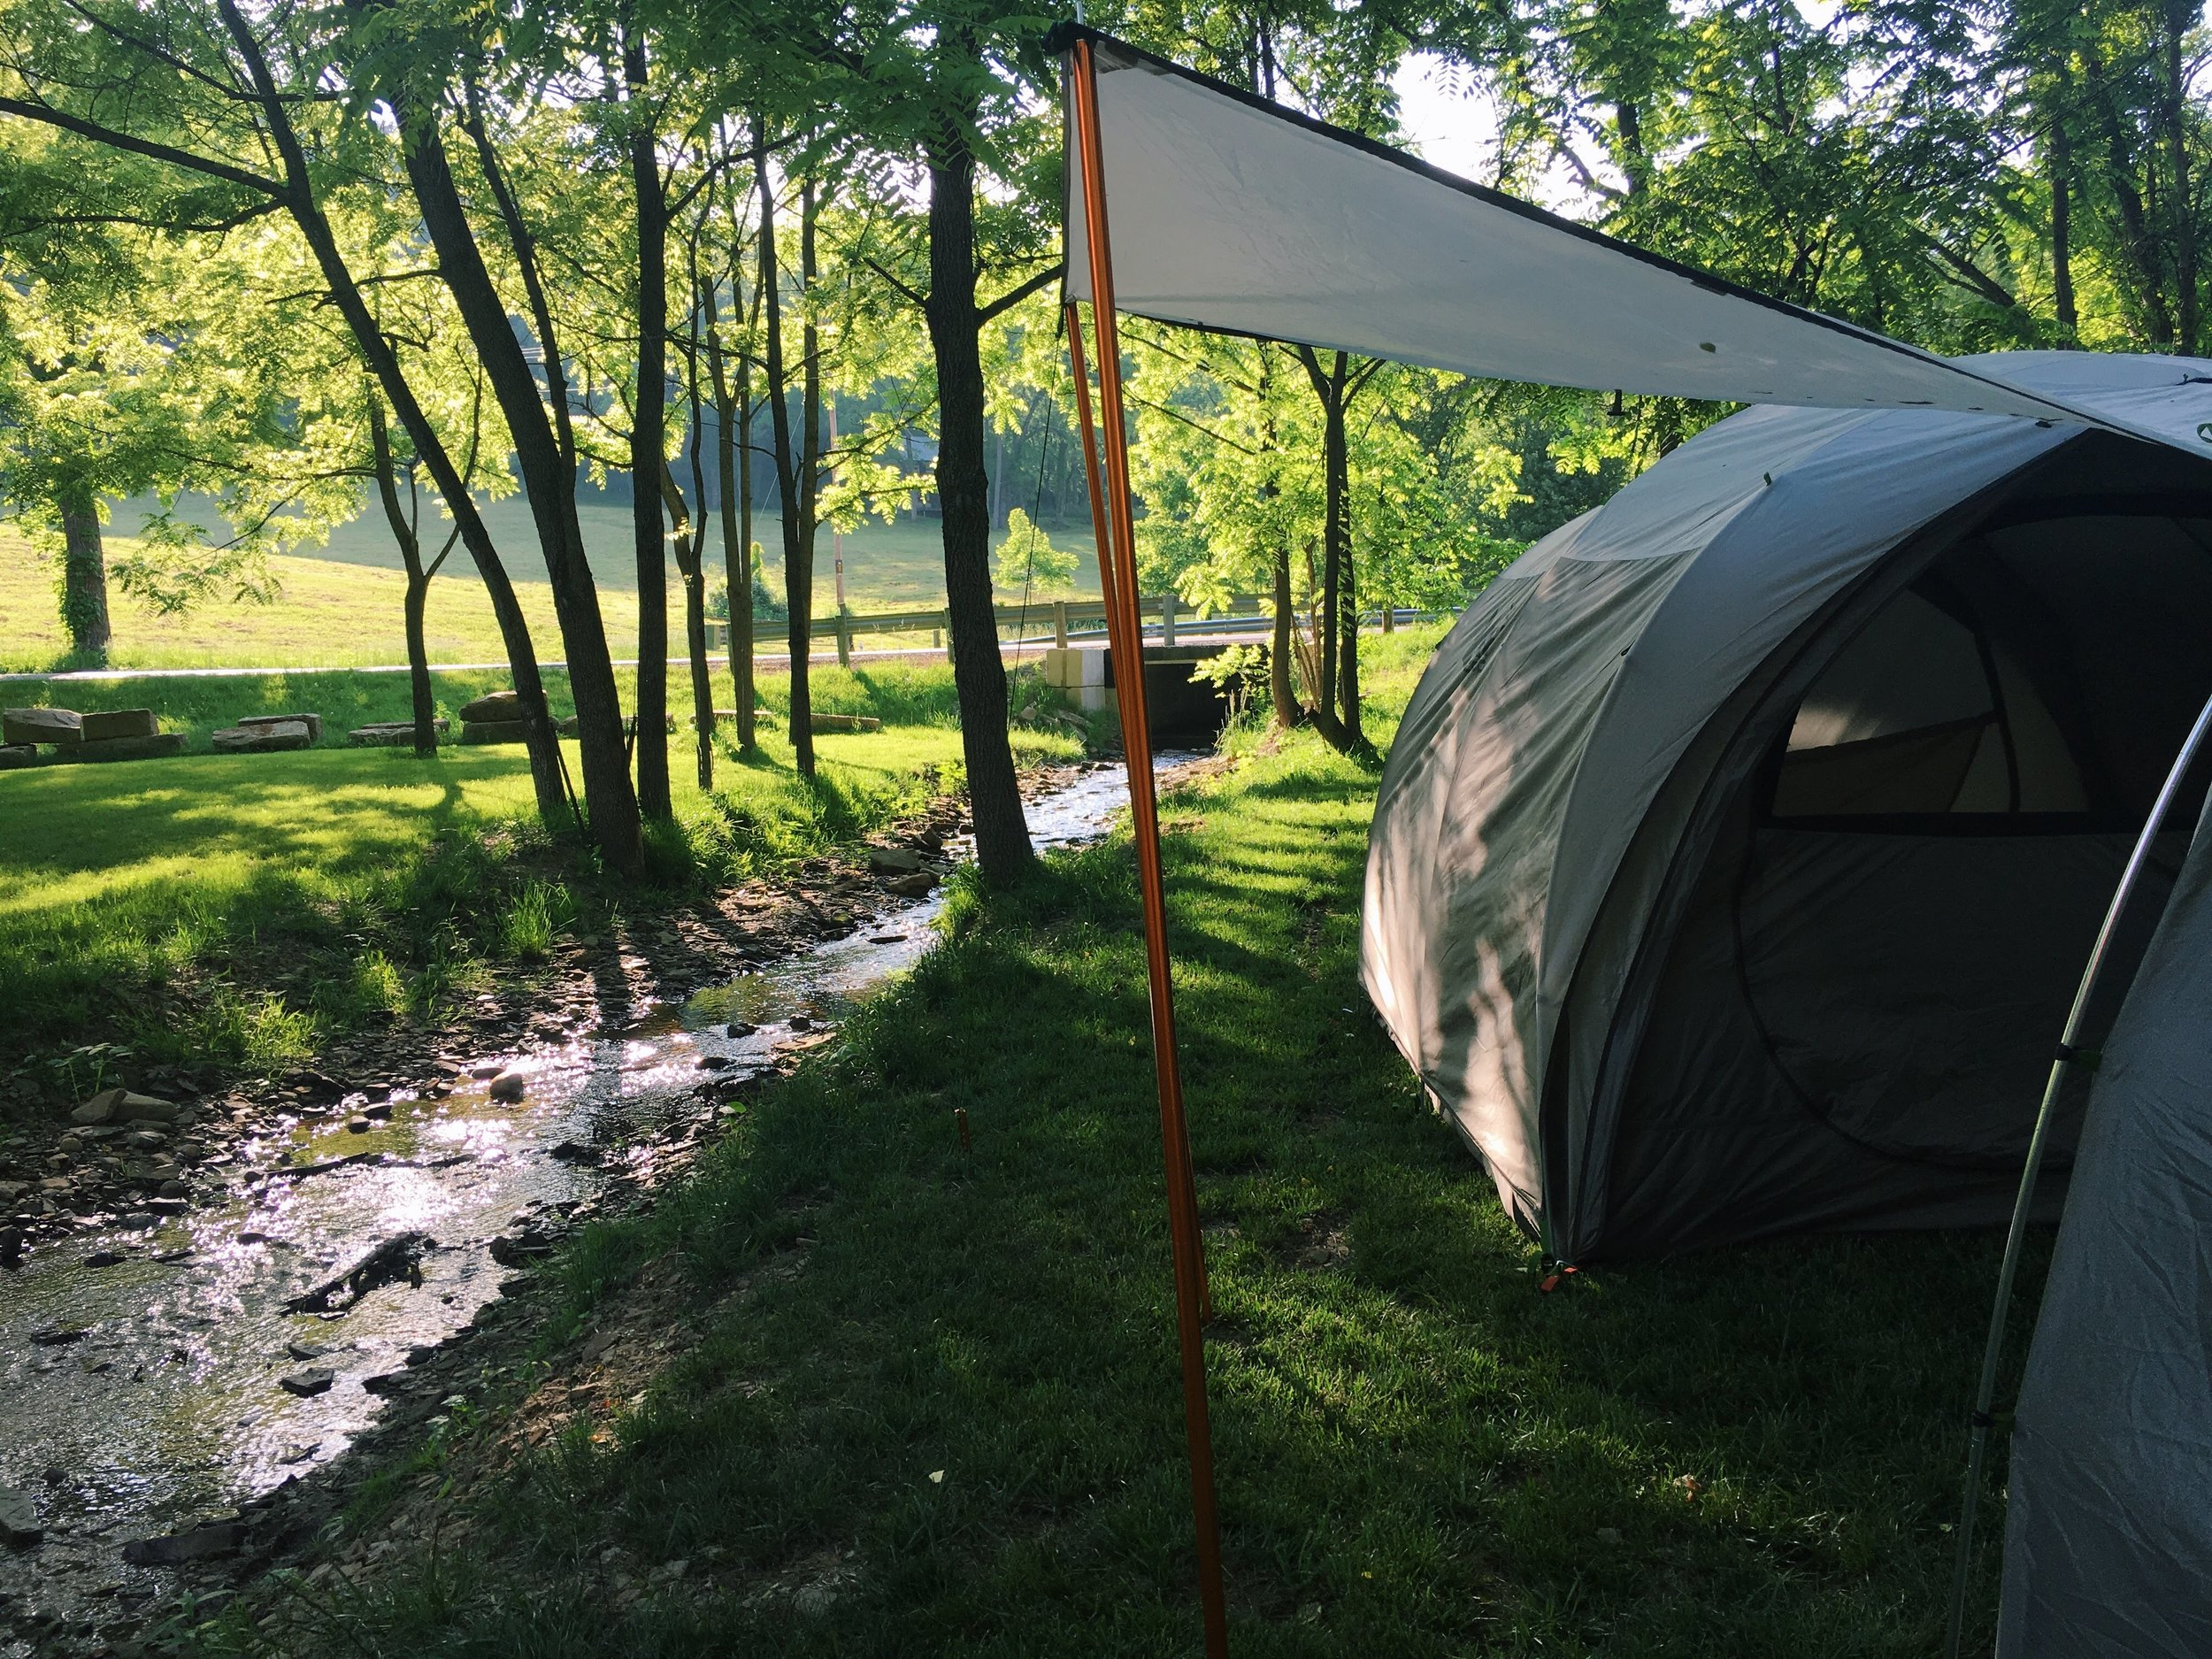 camping, tent, rei, creekside, nature, adventure